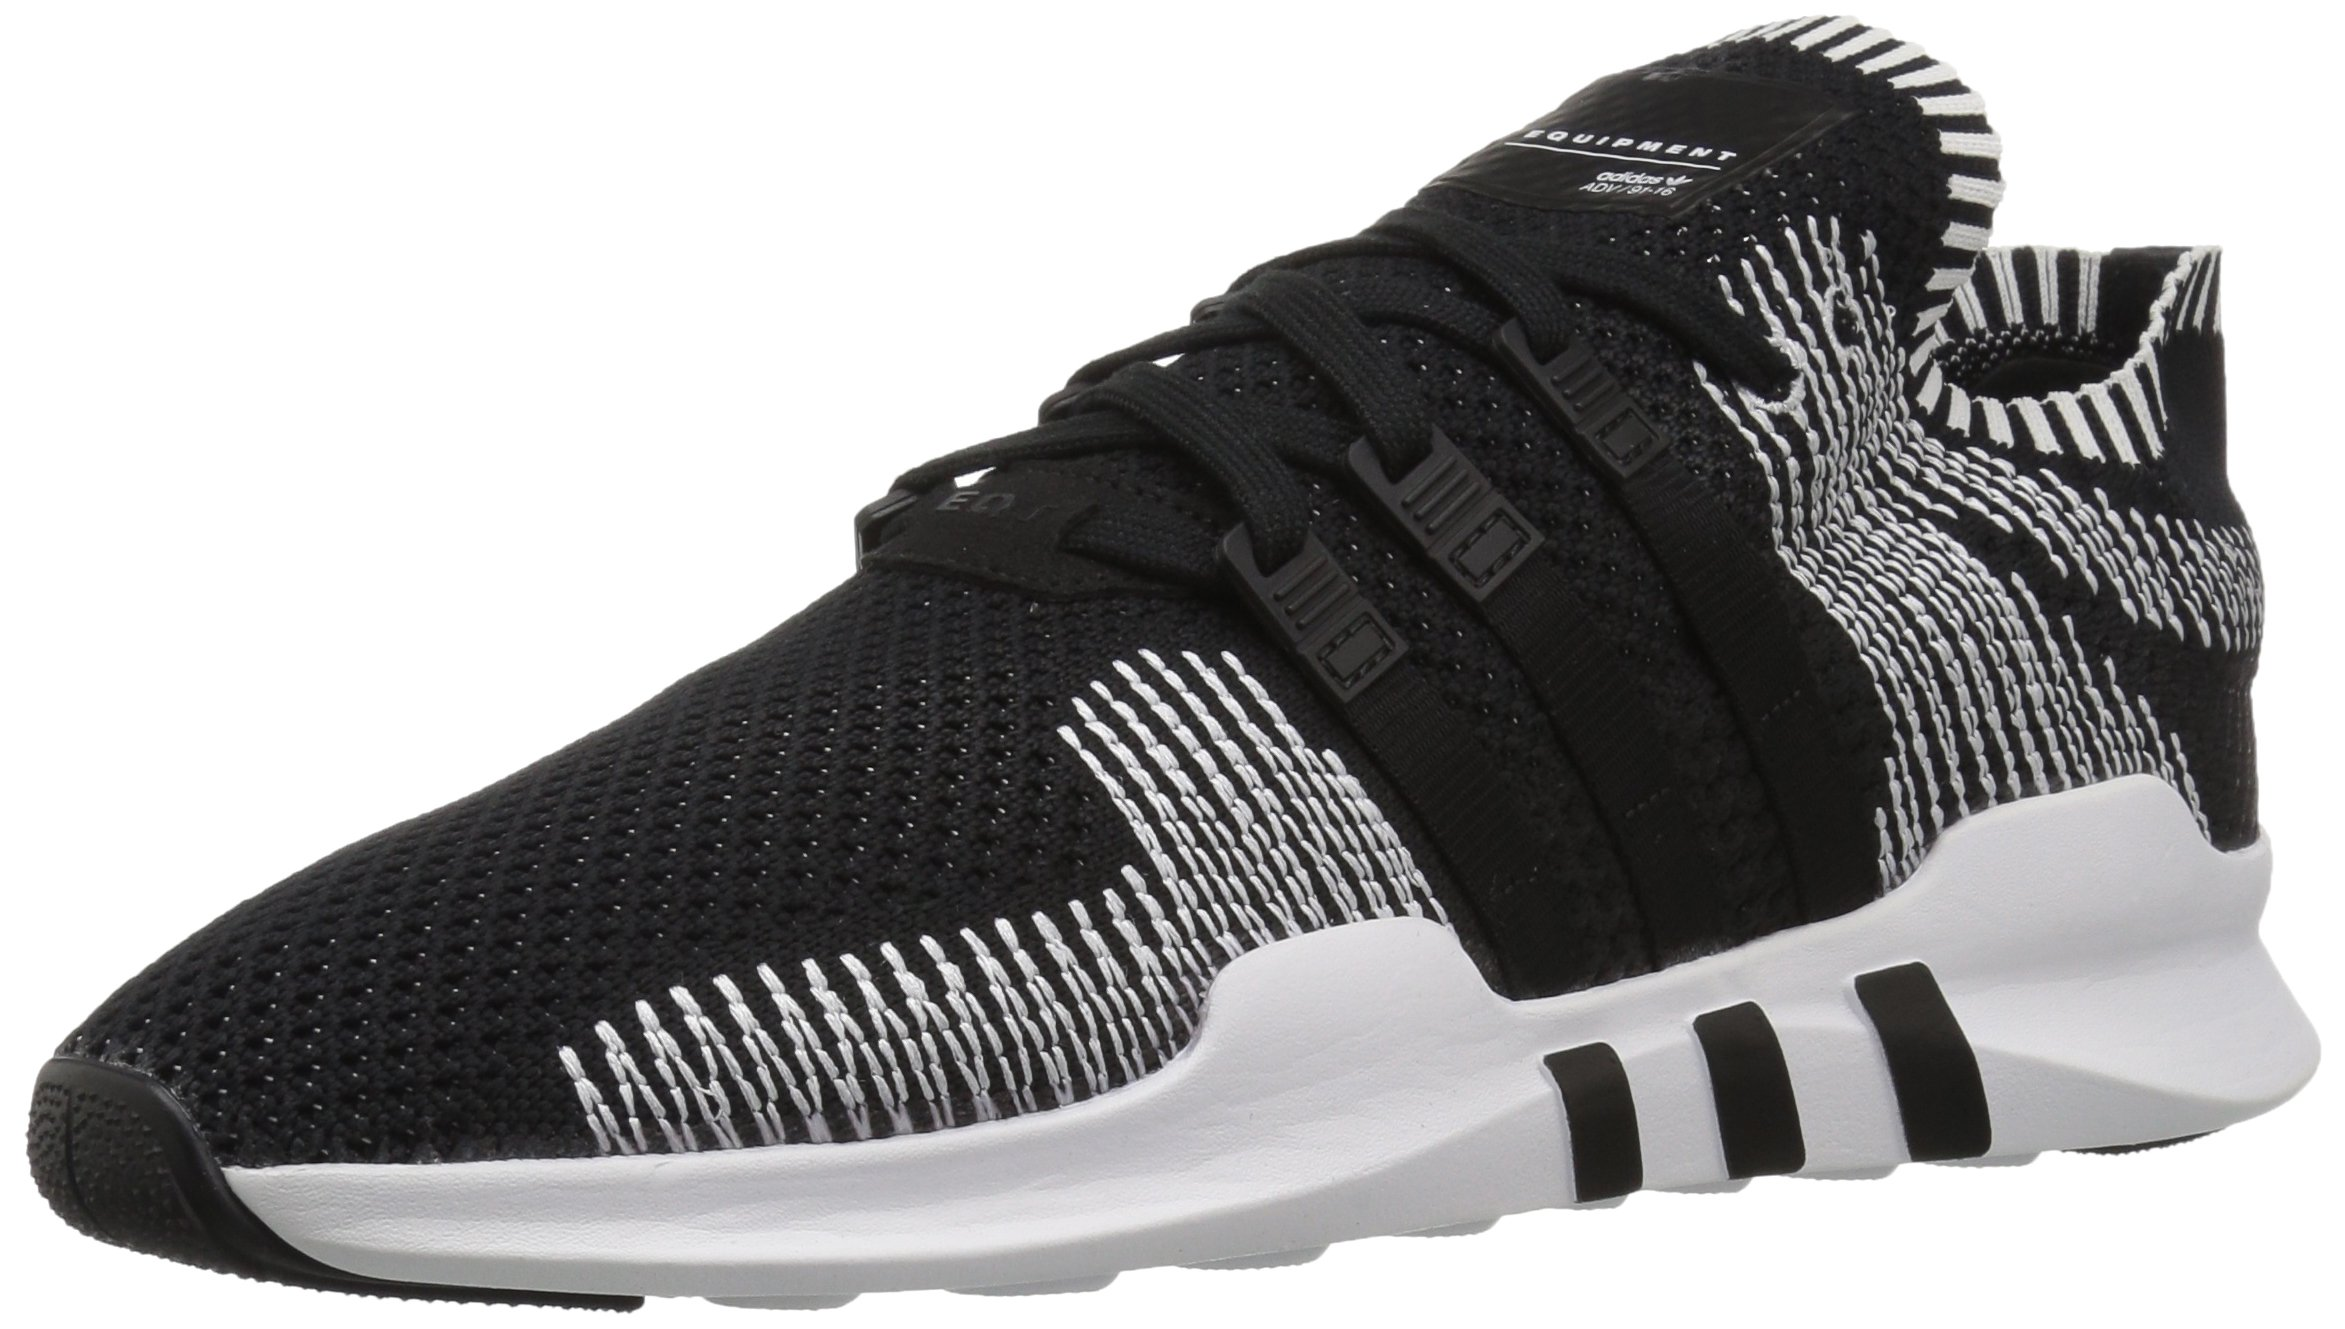 best service 30168 f6e32 adidas Originals Men's EQT Support ADV PK, Black/White, 10 Medium US